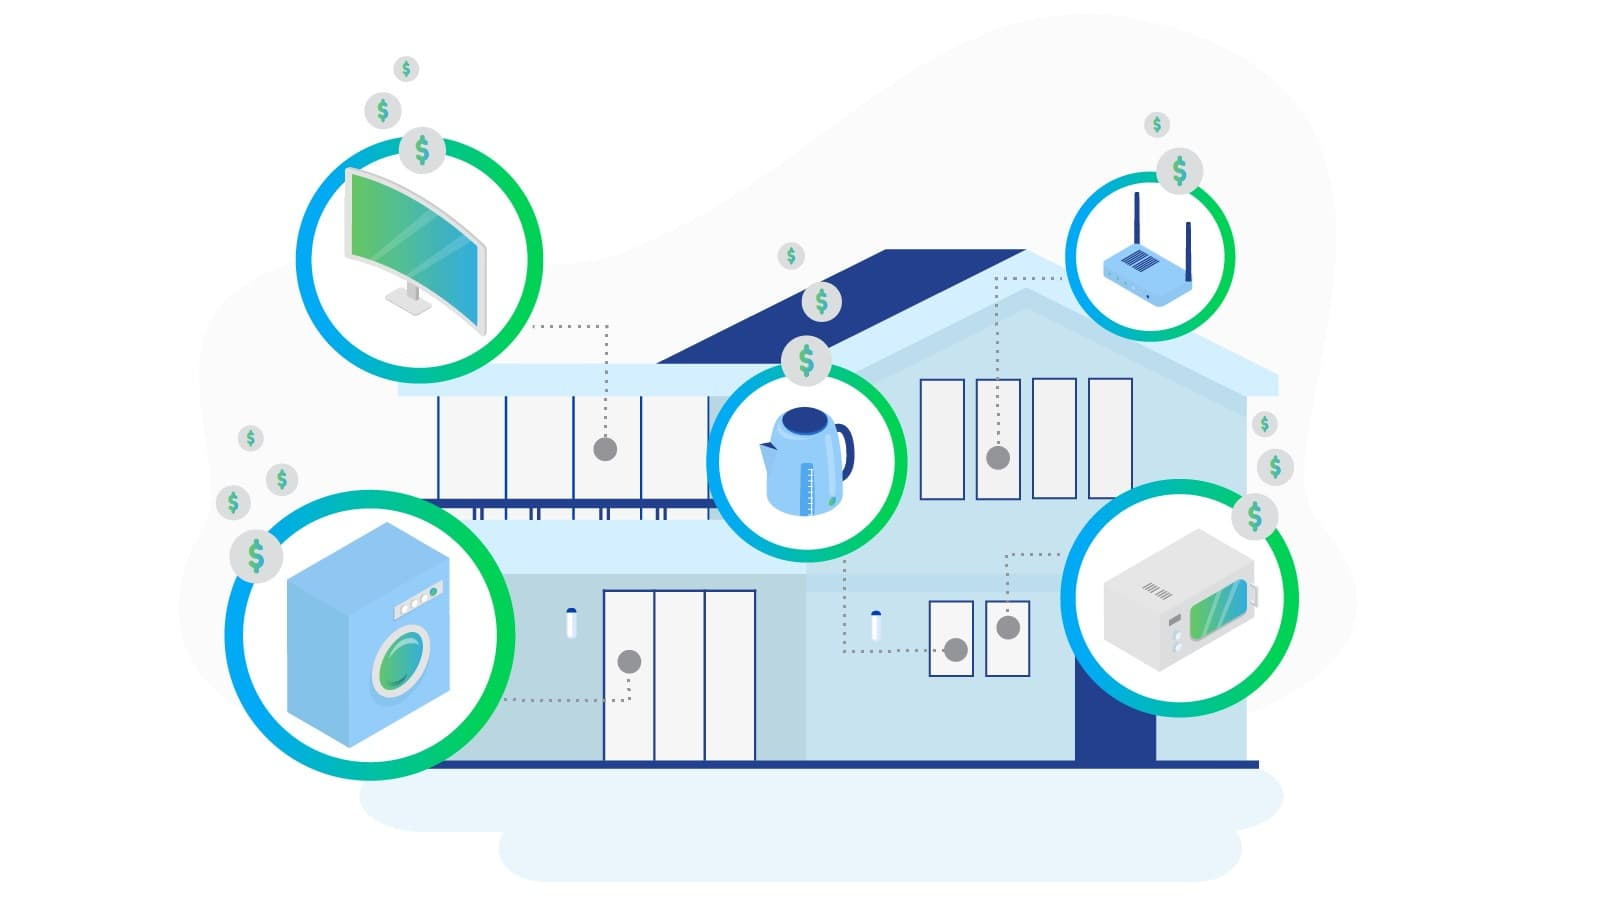 Automate your home with schedules and routines